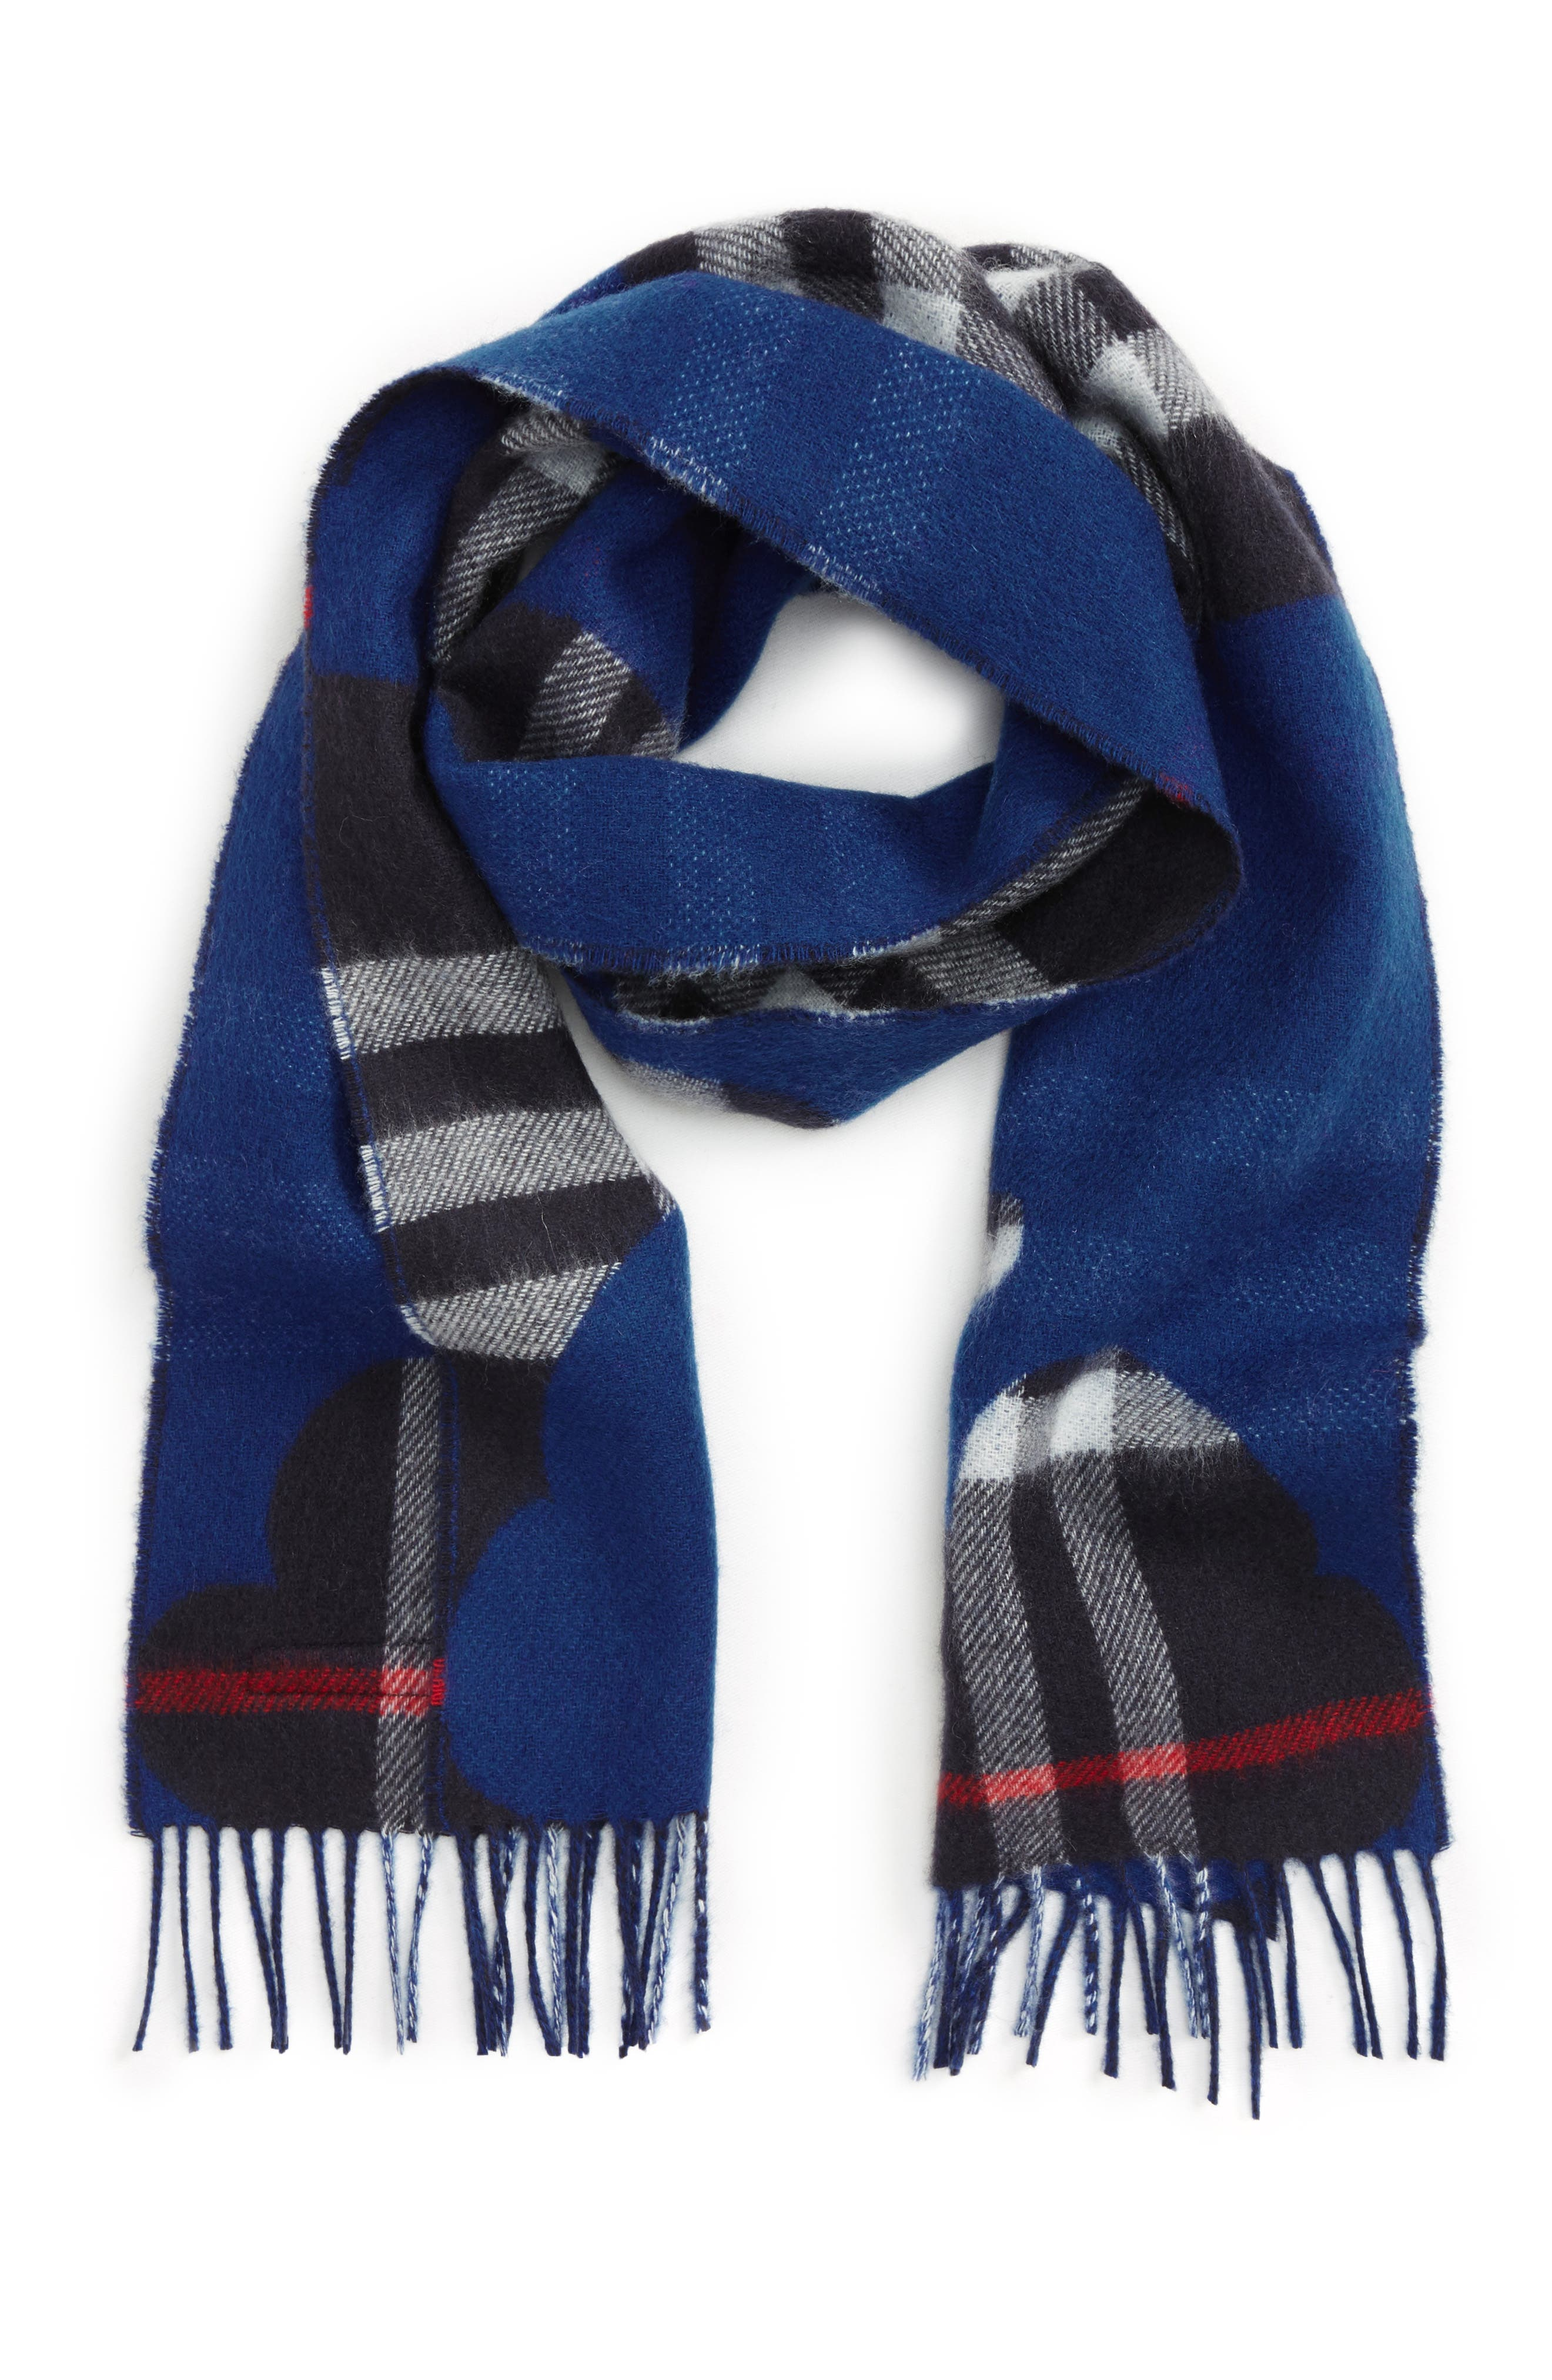 Alternate Image 1 Selected - Burberry Rain Check Cashmere Scarf (Kids)